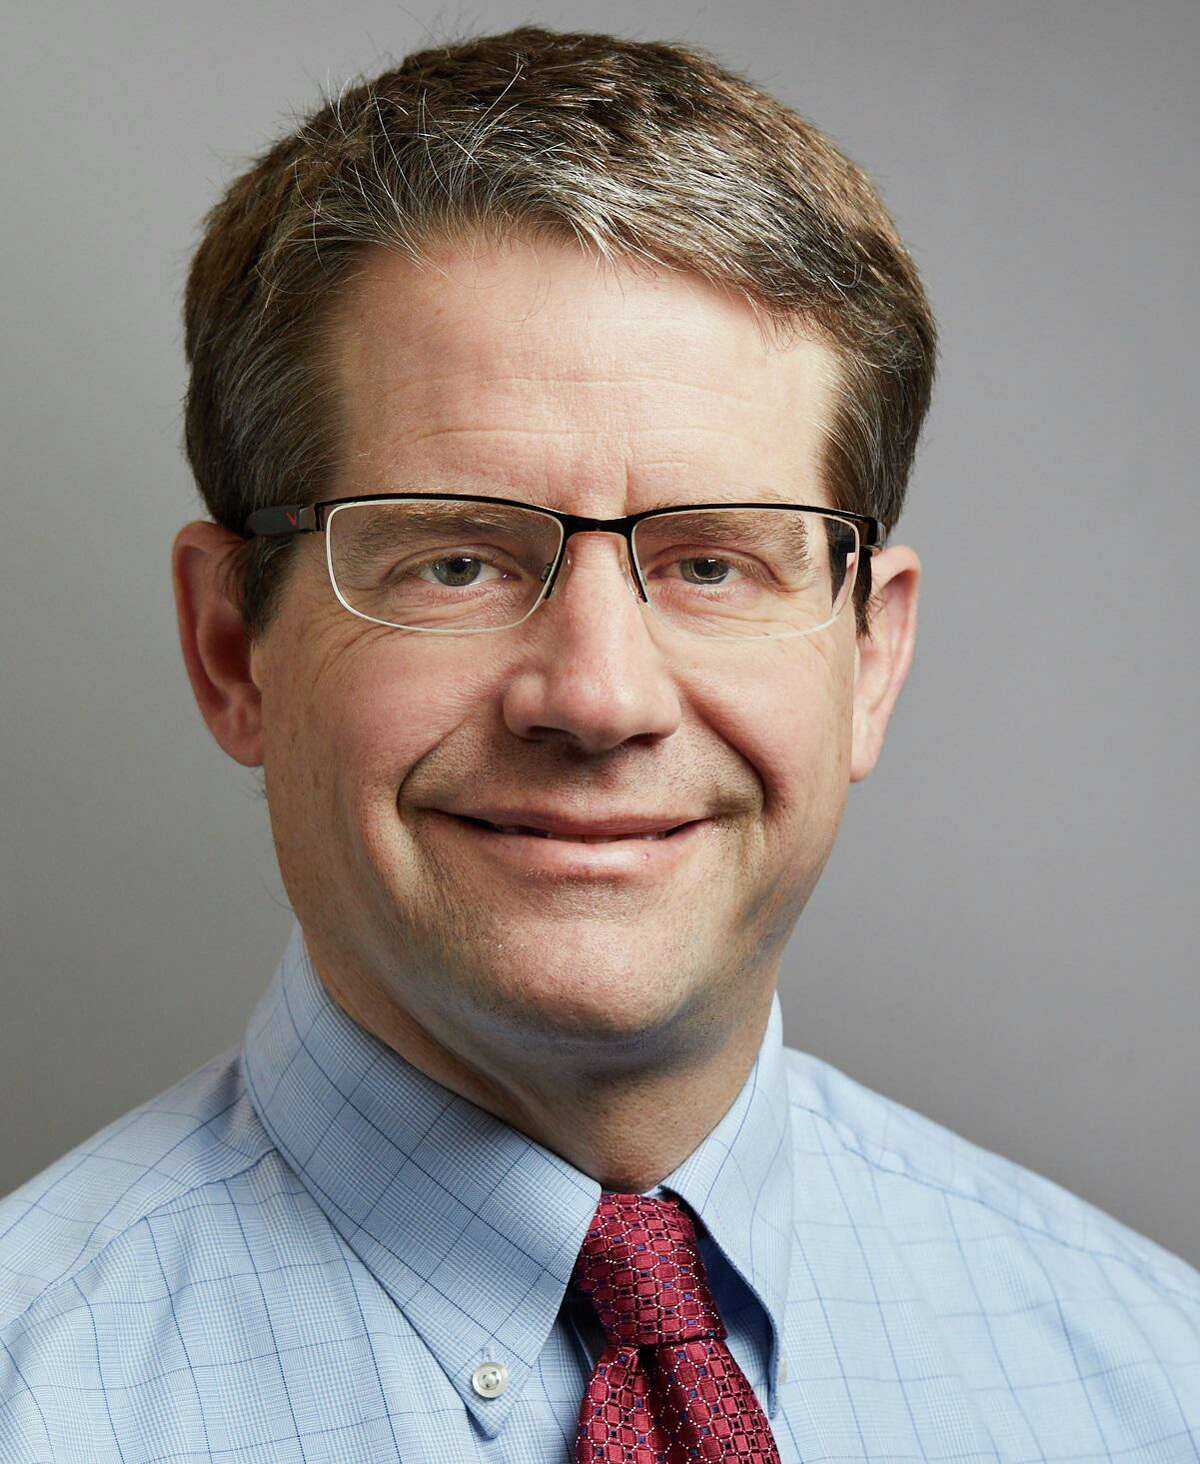 Dr. Thomas Murray,associate medical director for infection prevention at Yale New Haven Children's Hospital.